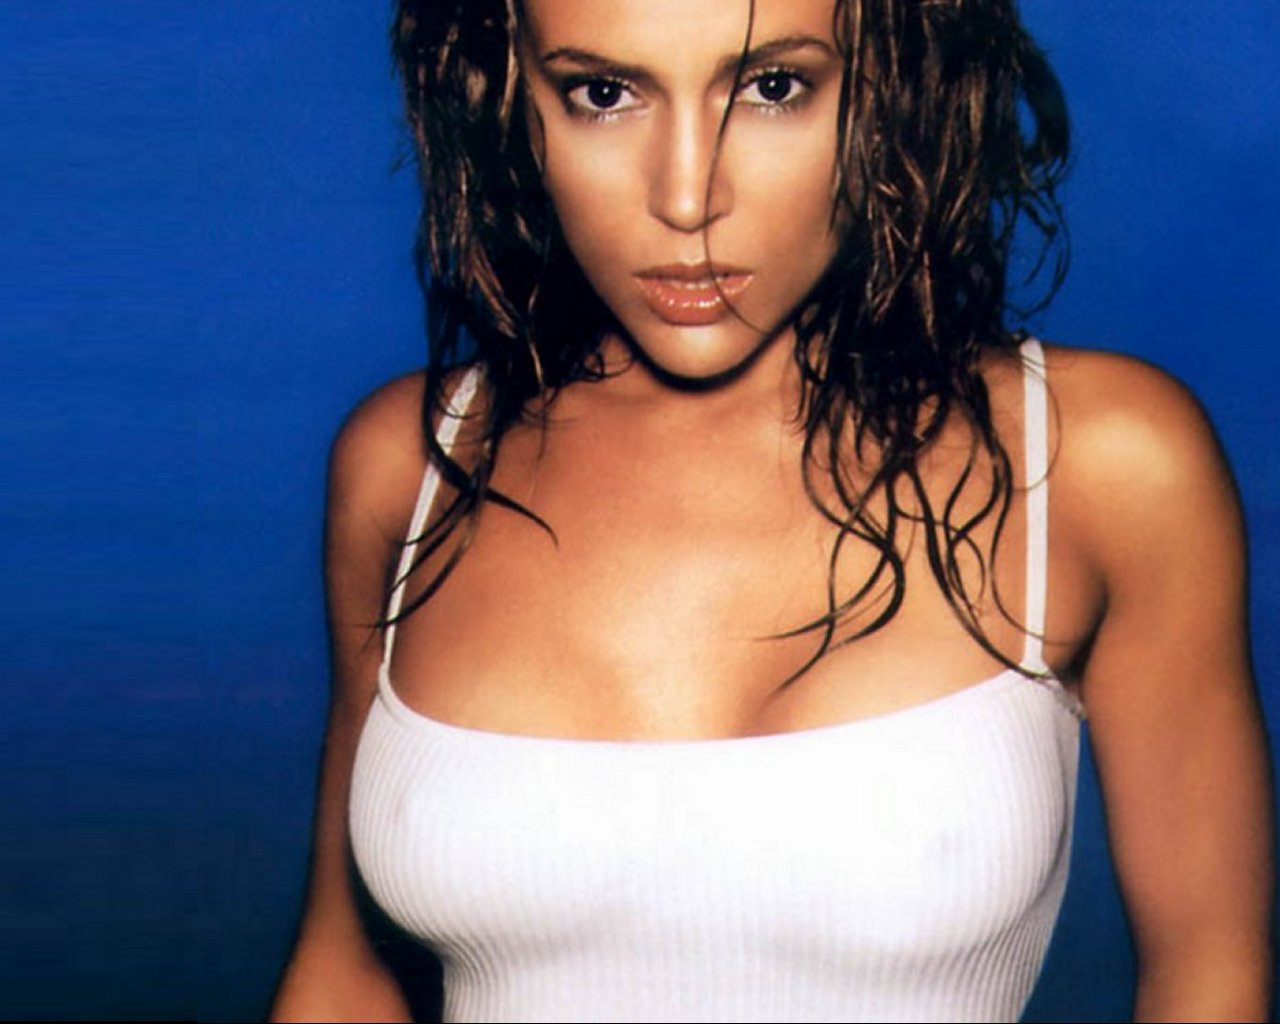 Celebrities body pics hot alyssa milano body pics Sexy 30